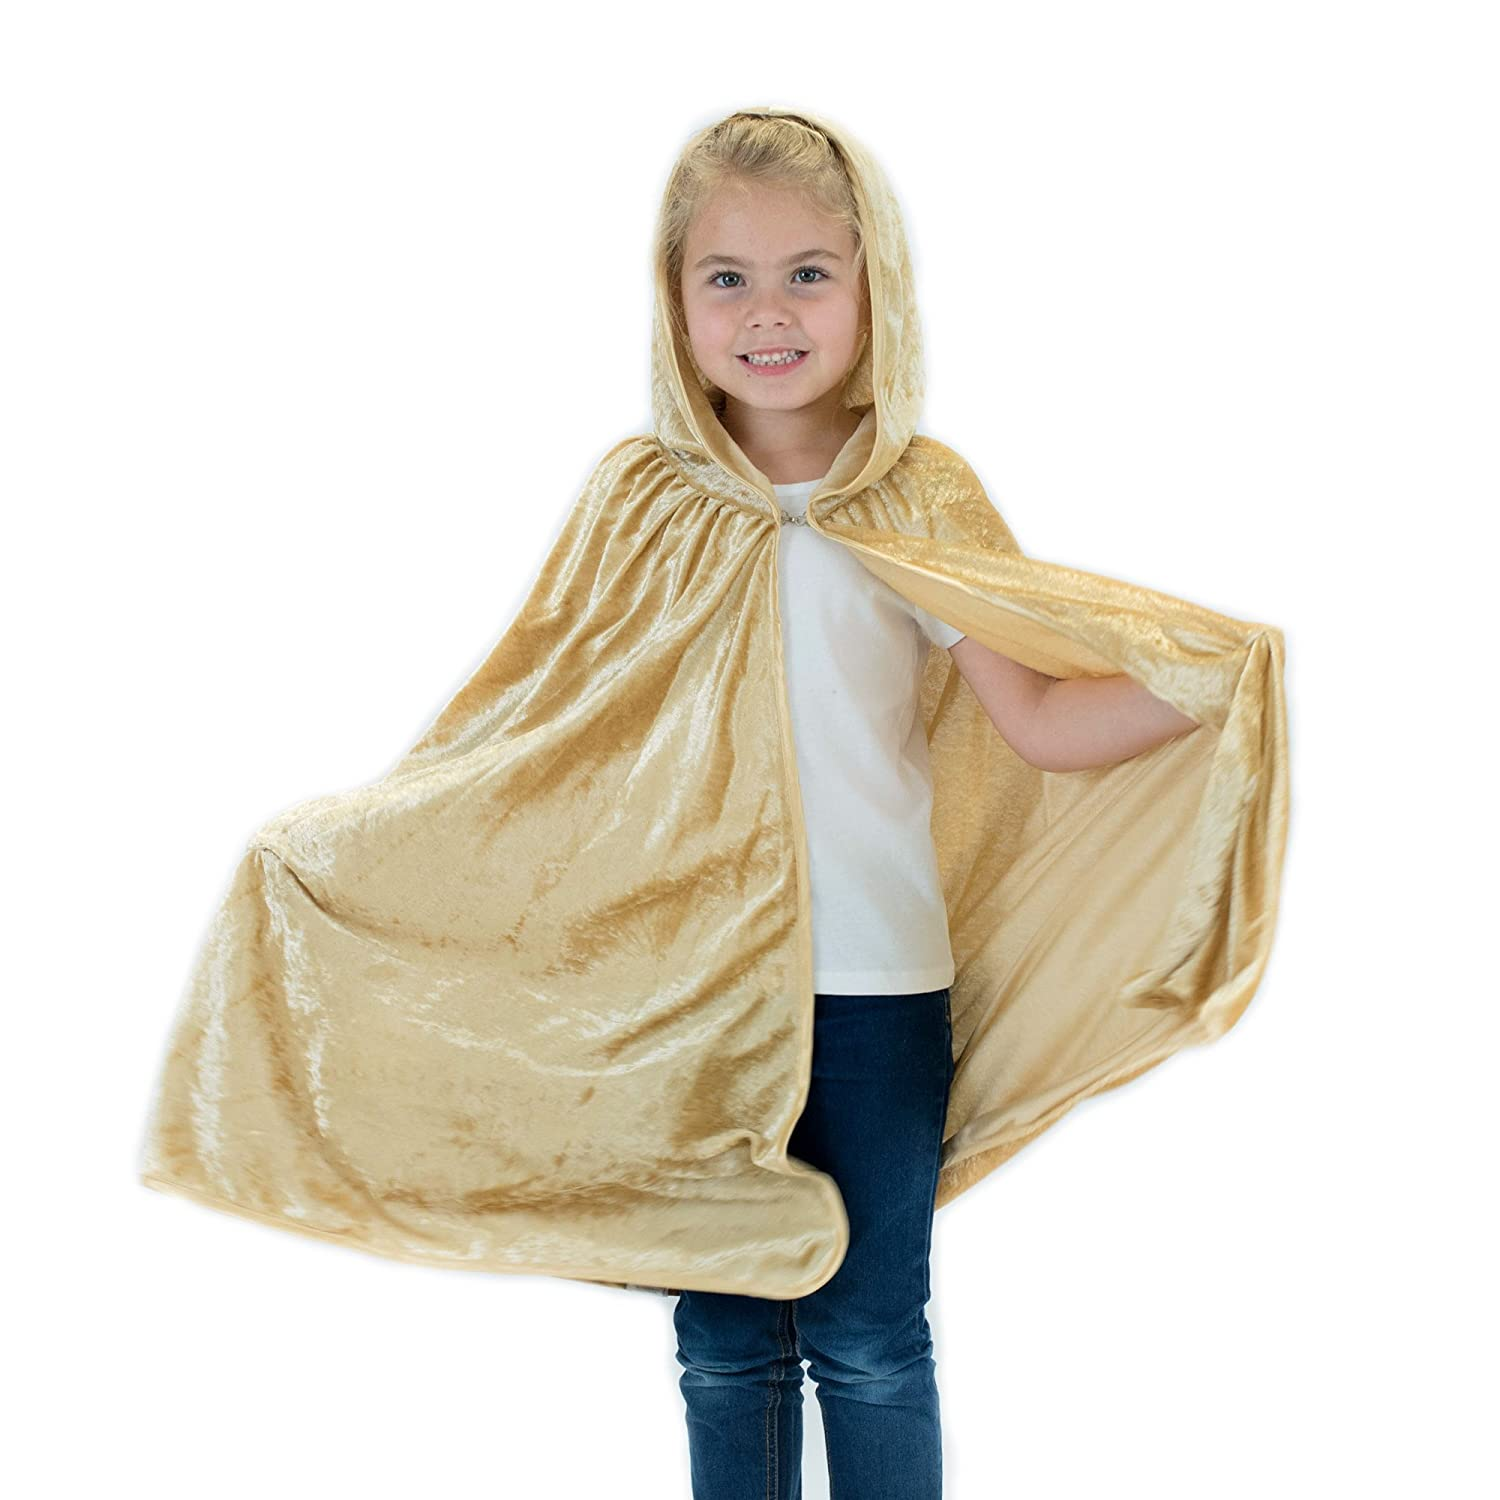 Hooded Cape For Kids | Children's Cloak With Hood For Halloween, Costumes, Red Riding Hood, Harry Potter, Cosplay And More 120817